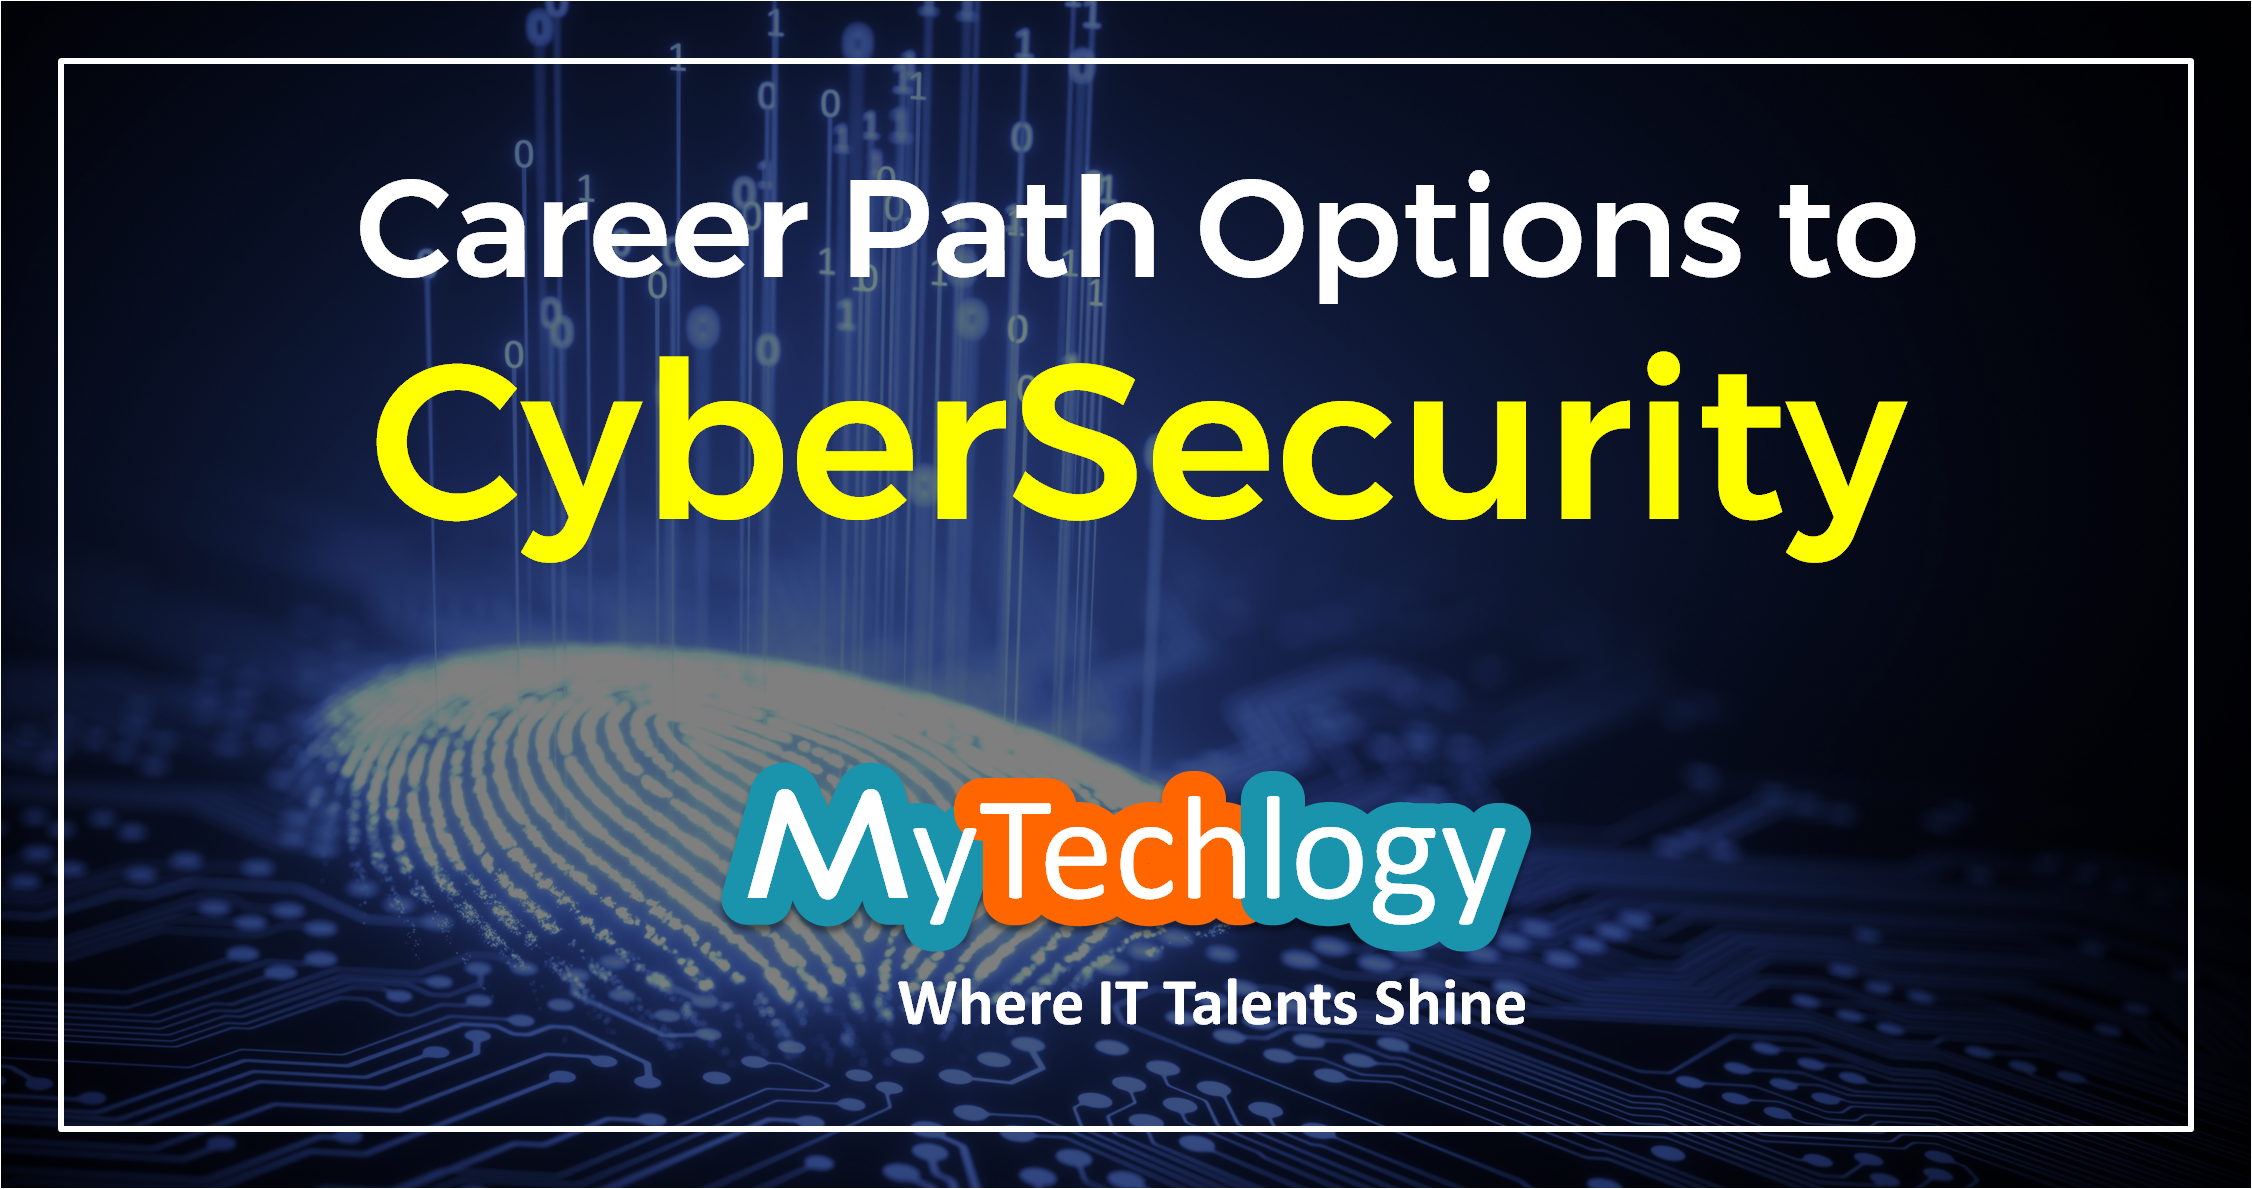 Career Path options and framework to becoming a CyberSecurity professional - Image 1